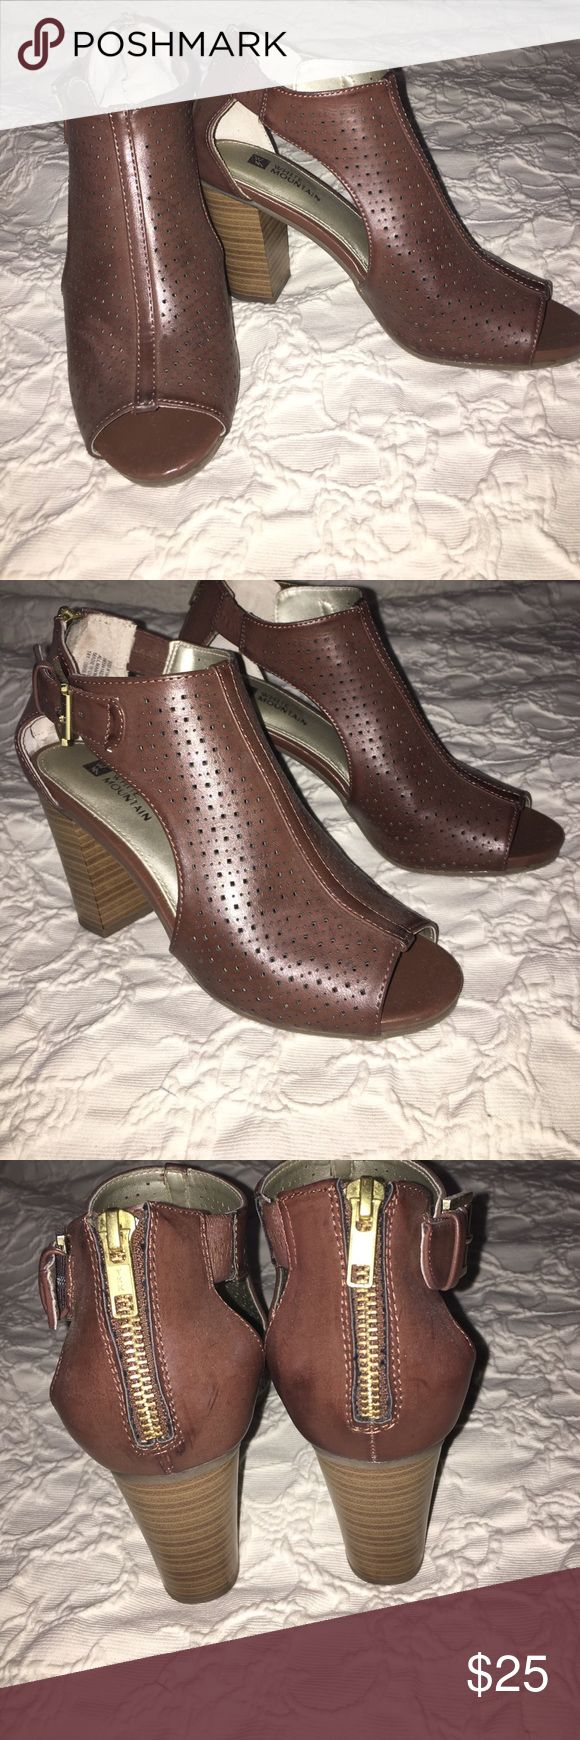 Cute peep toe heeled booties Only worn twice, in great condition. So cute, and comfy! white mountain  Shoes Heeled Boots